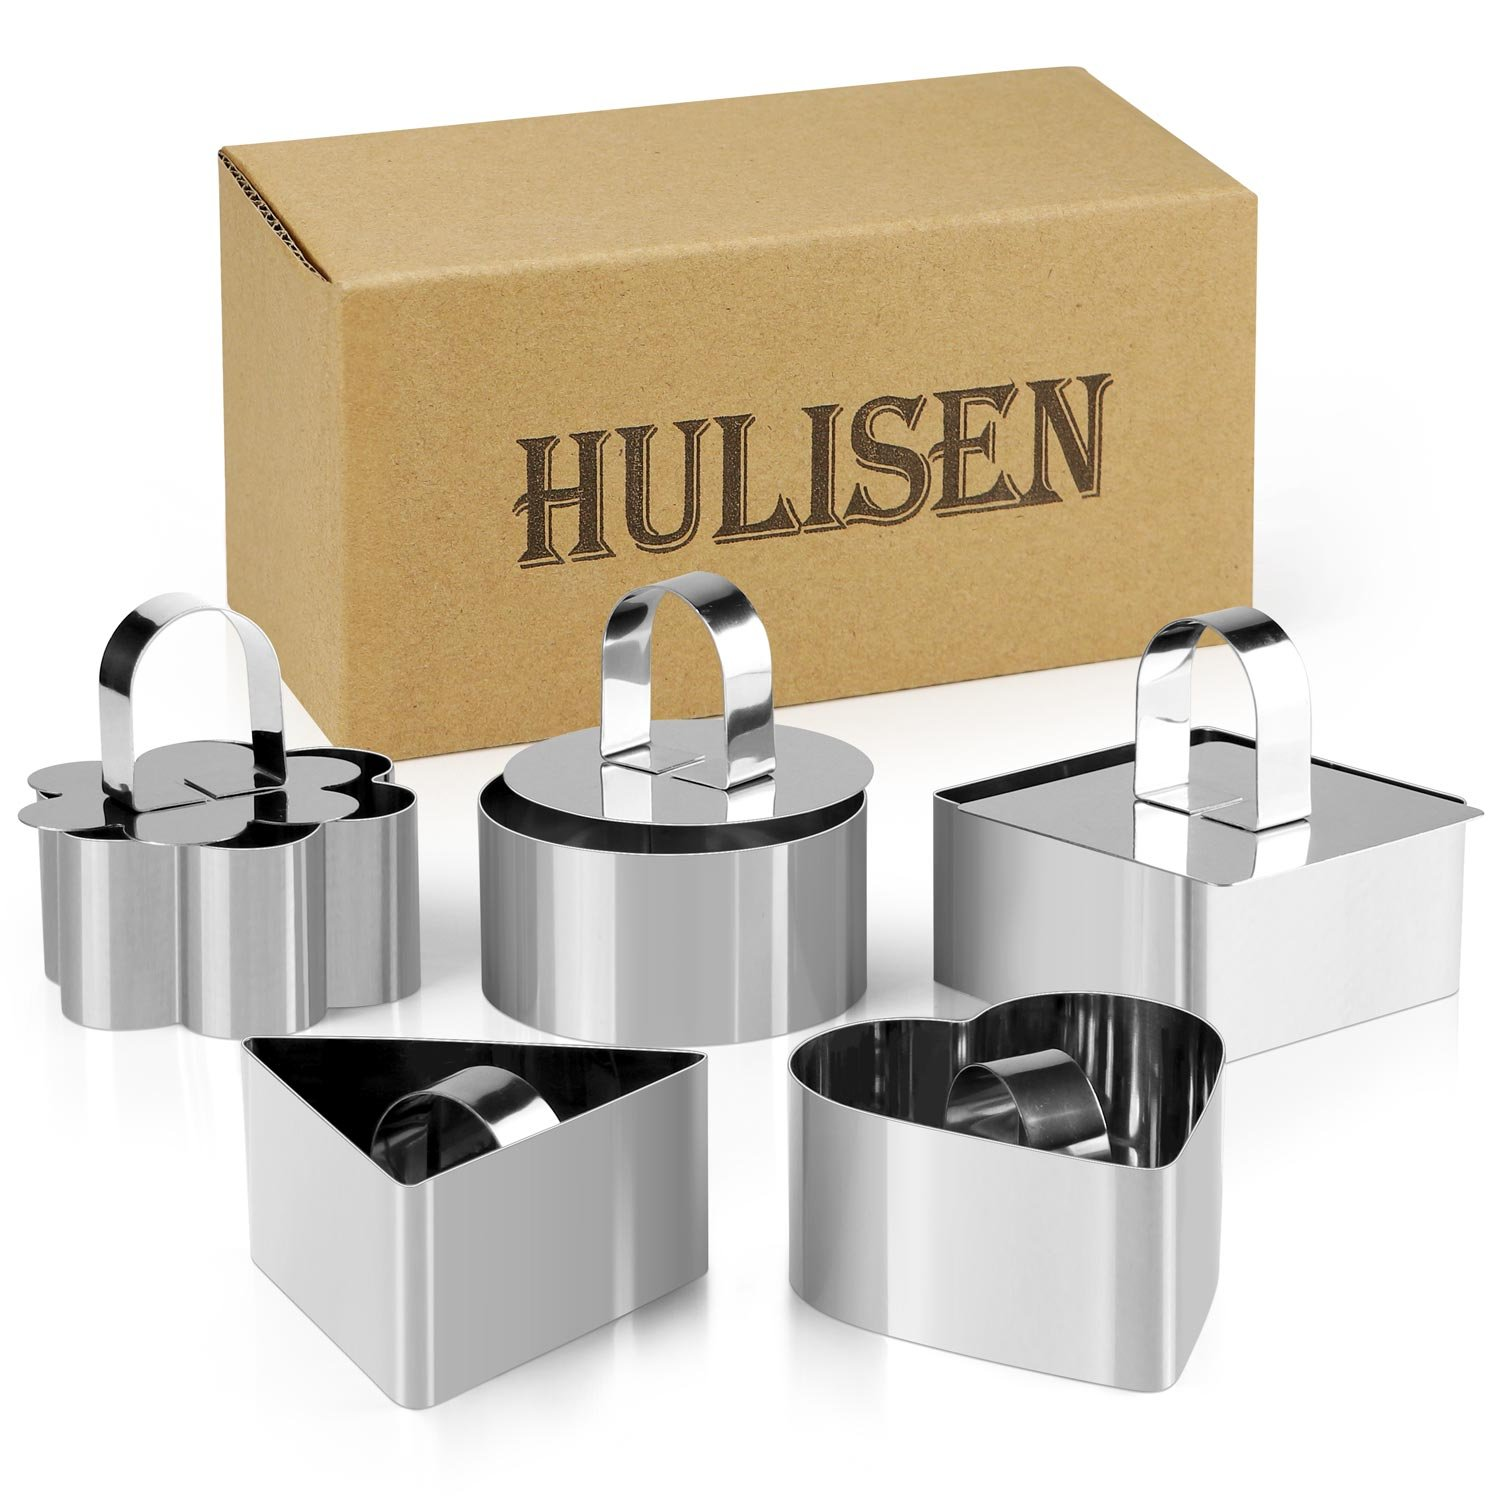 10 Pcs/Set Stainless Steel Cake Ring, HULISEN 3 x 3 inch Square Dessert Mousse Mold with Pusher & Lifter Cooking Rings 0401